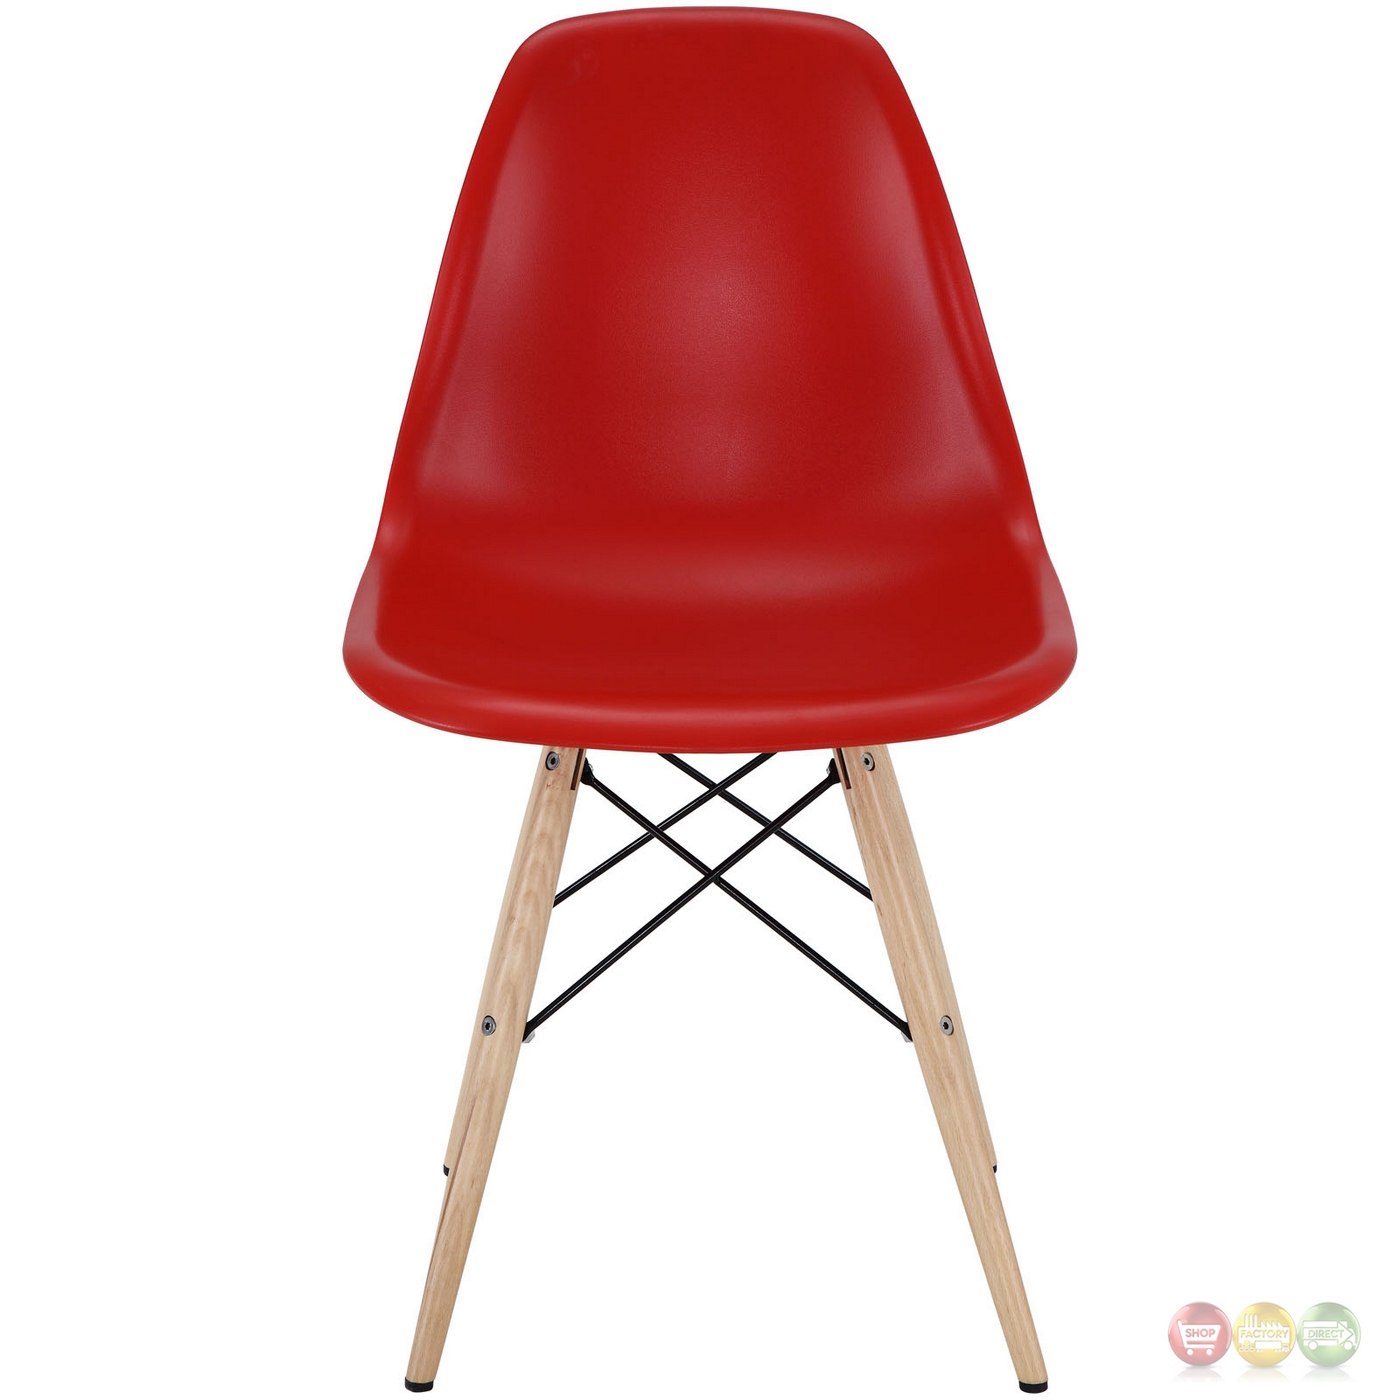 Pyramid Modern Plastic Side Chair With Wood Legs Steel Accents Red